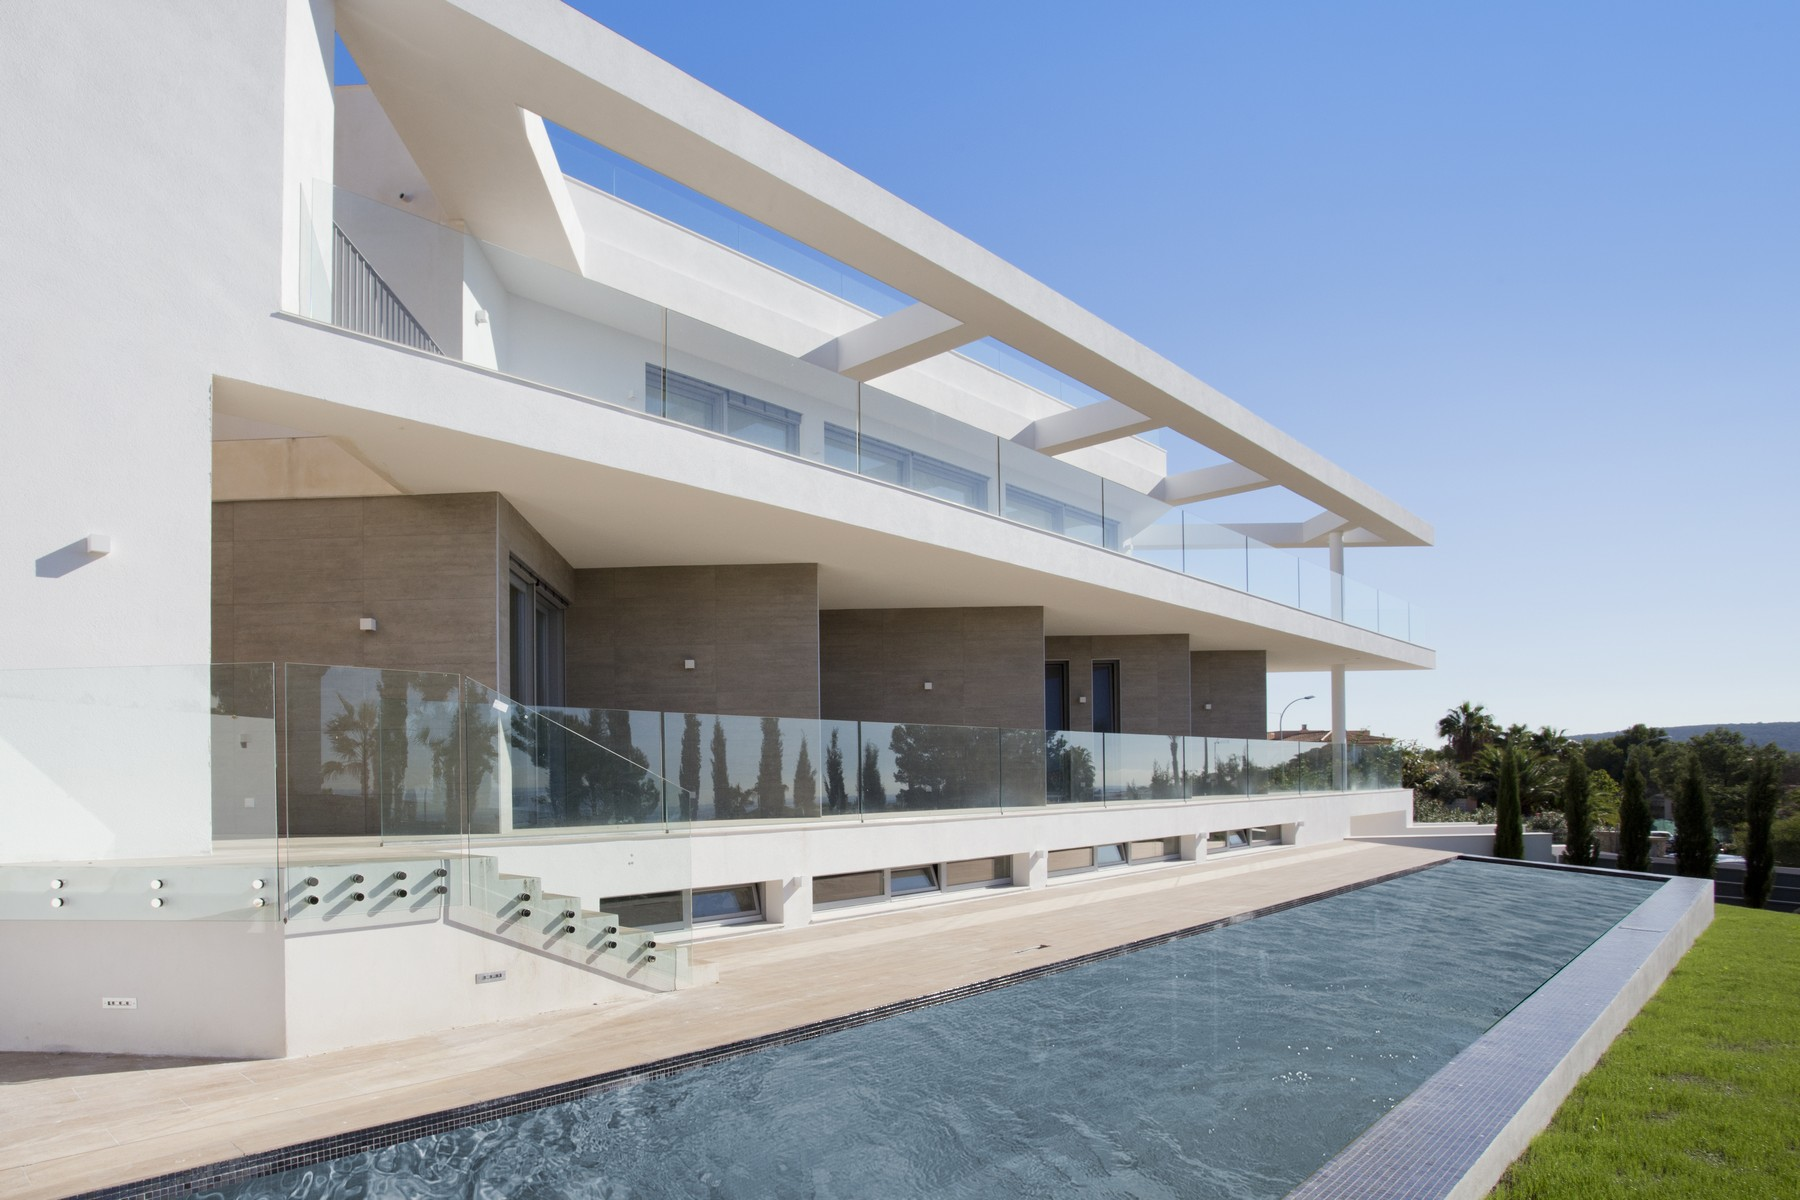 Single Family Home for Sale at Villa with sea views in Nova Santa Ponsa Santa Ponsa, Mallorca, 07180 Spain